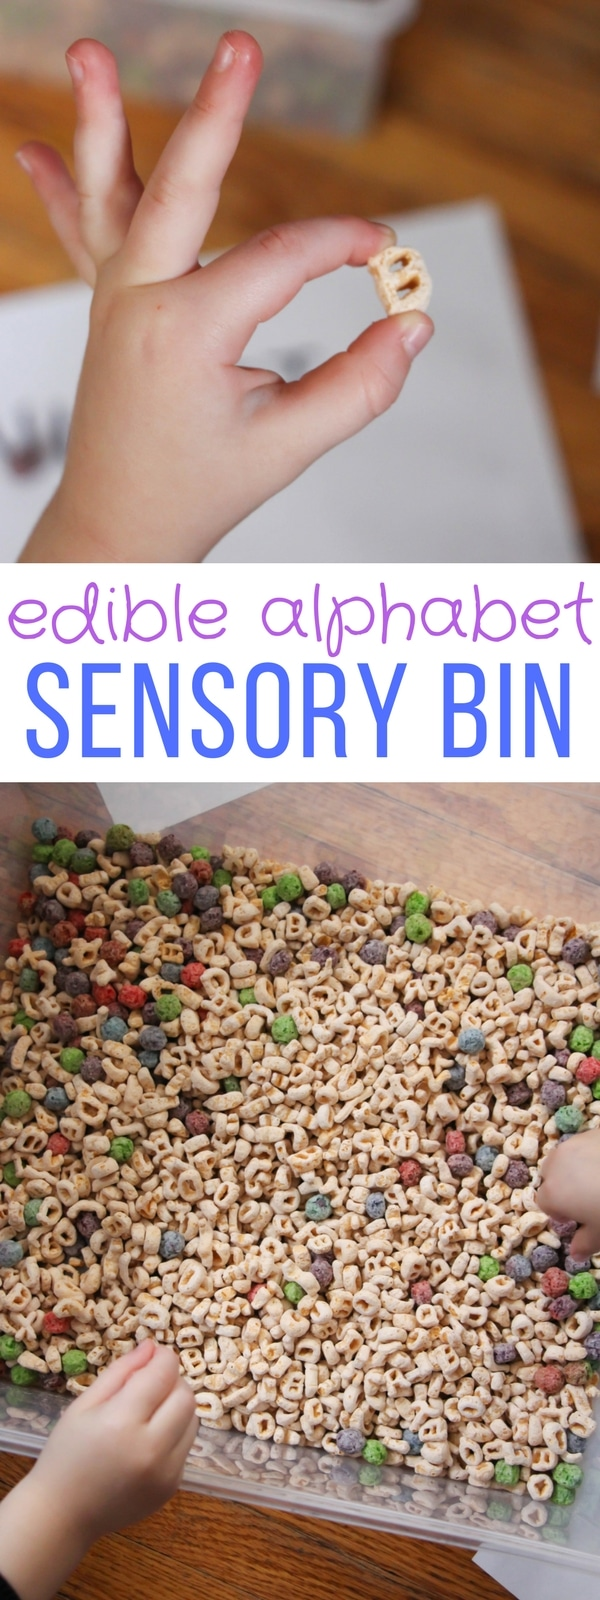 This Edible Alphabet Sensory Bin is low cost and simple but the opportunities for teaching letter recognition and sounds are endless!